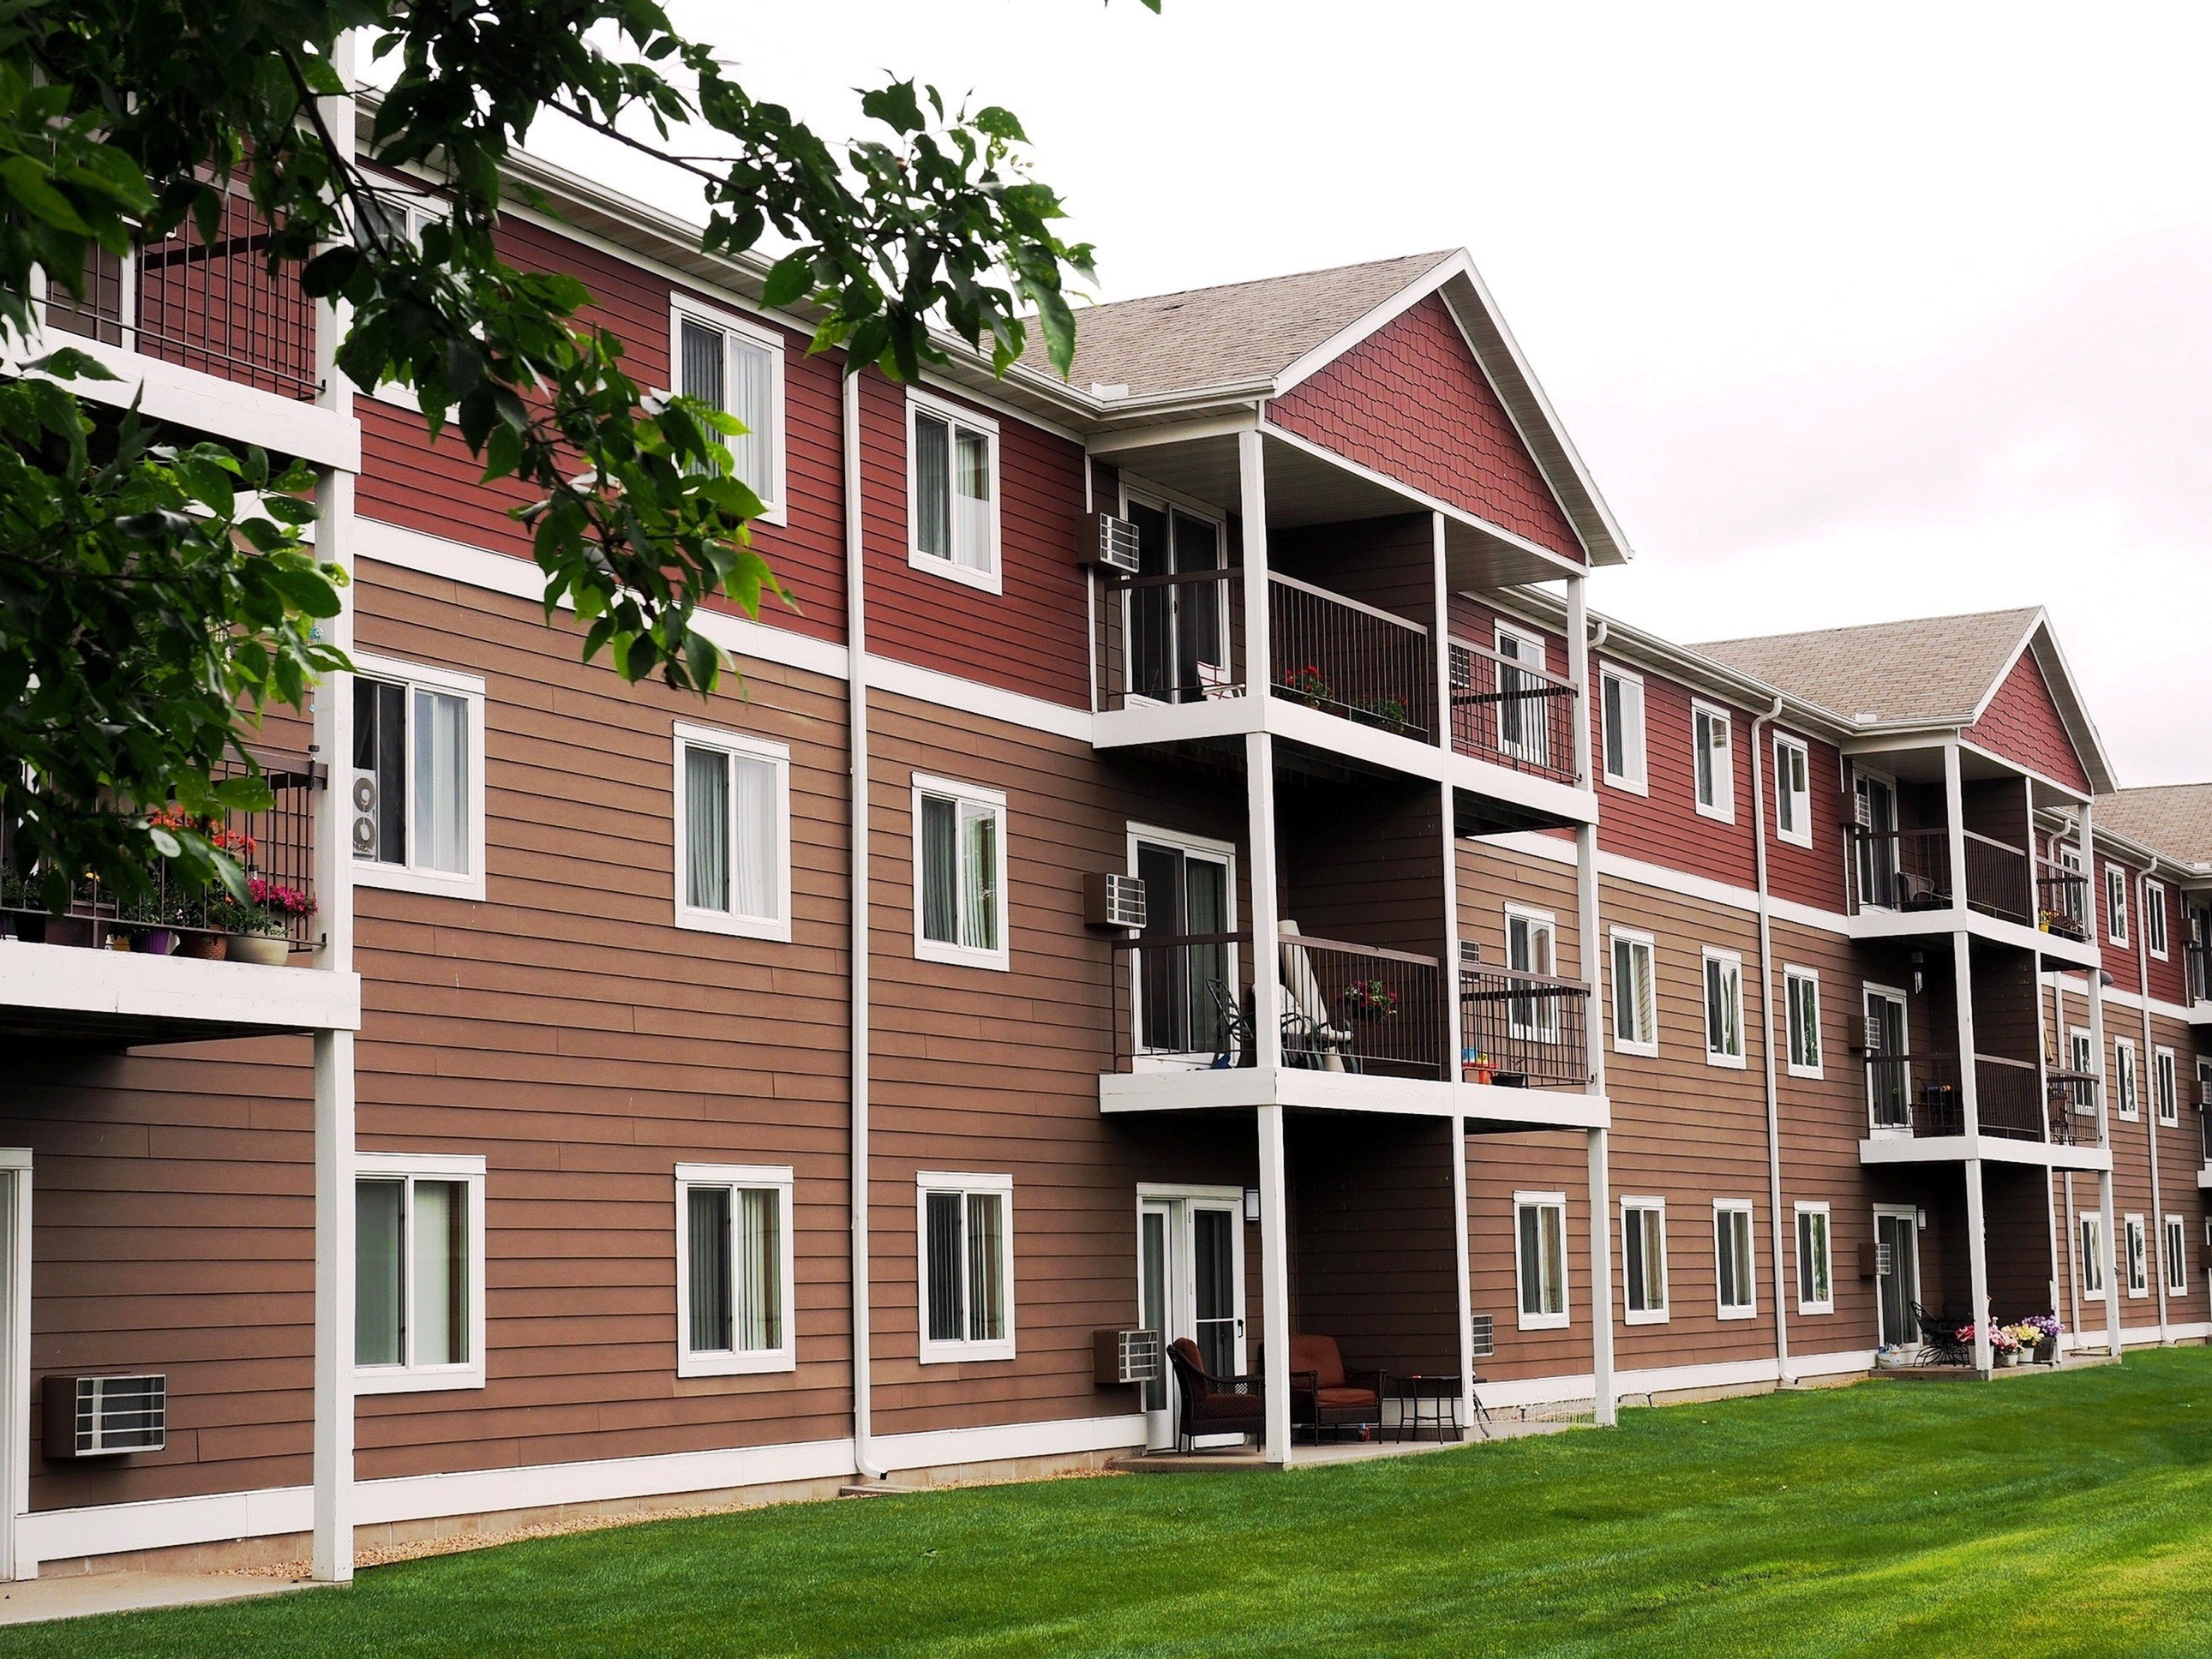 Best Albertville Meadows Apartments And Townhomes 10732 County With Pictures